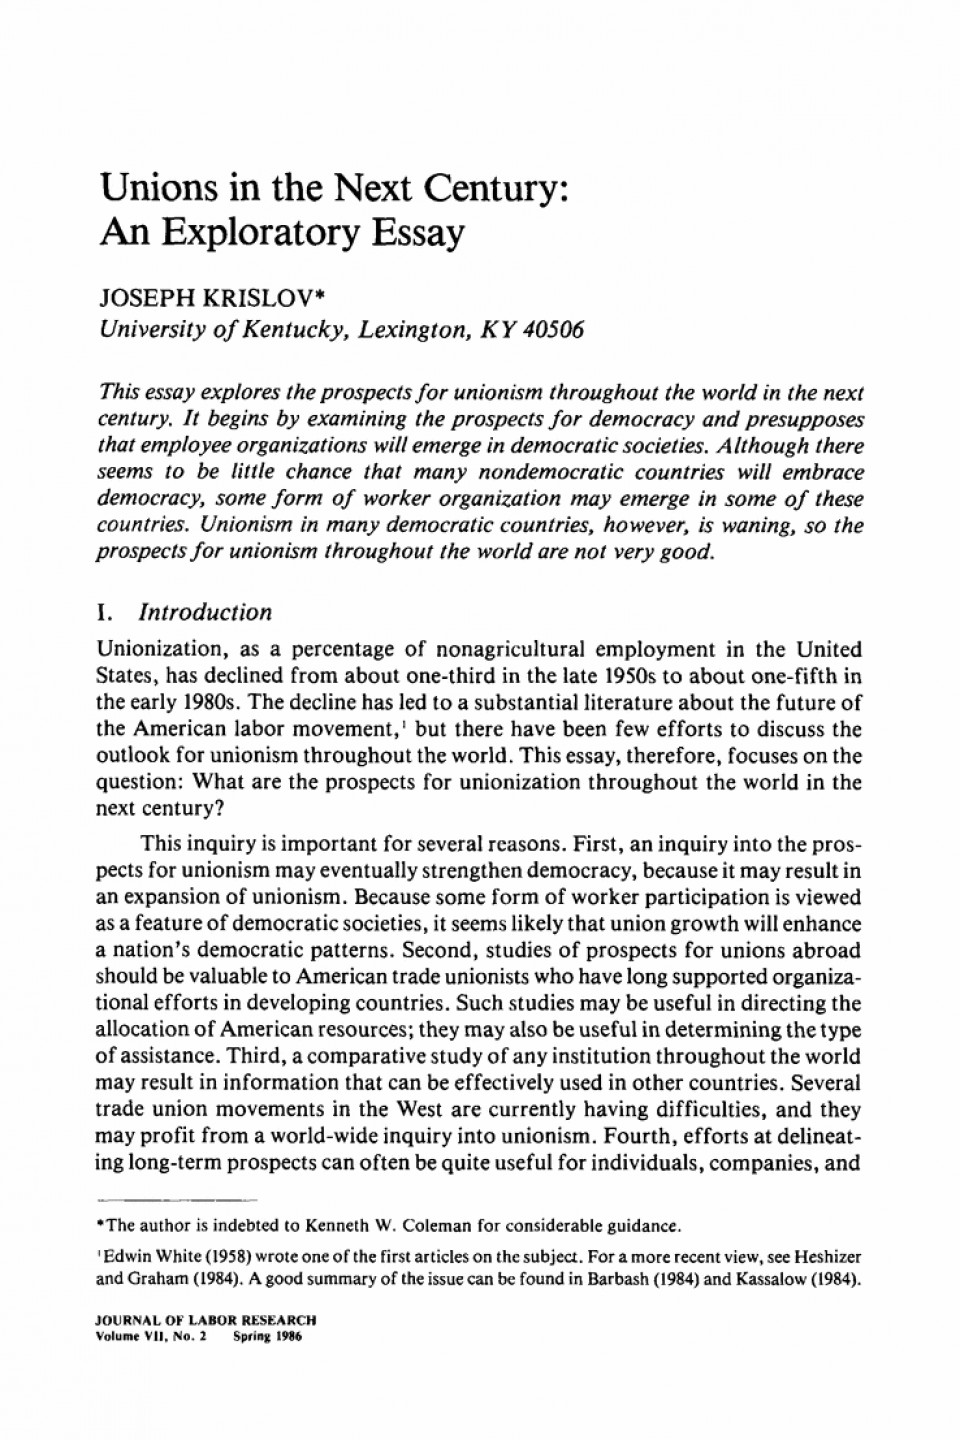 001 Exploratory Essay Example Unions In The Next Century An Springer L Stunning Definition Topics About Sports Sample Pdf 960